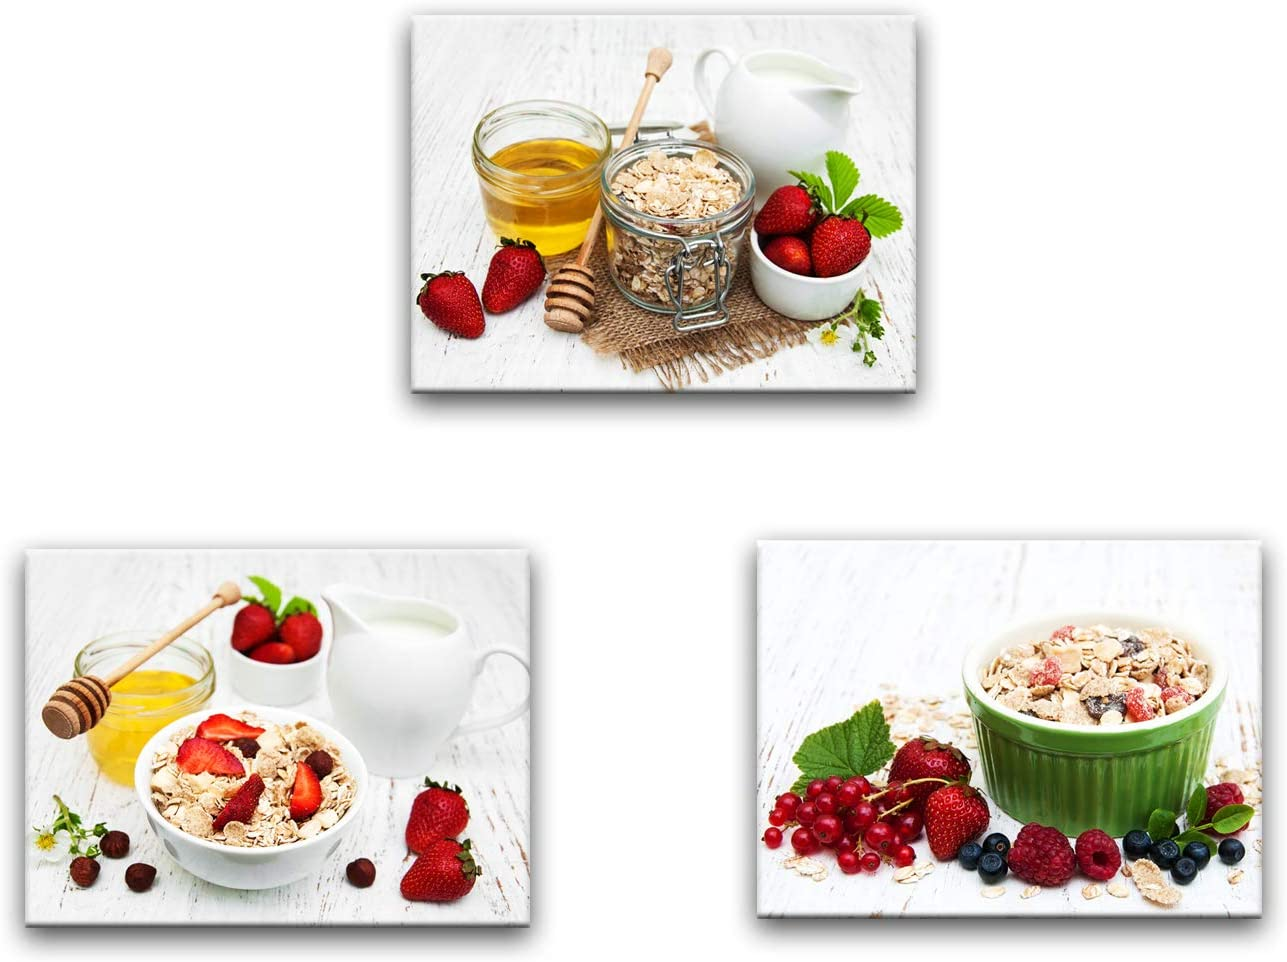 Artsbay Kitchen Canvas Wall Art Decorations Contemporary Painting Fruits Artwork 3 Panel Framed Canvas Prints of Oatmeal Milk Strawberry Modern Pictures for Home Wall Decor Dining Room